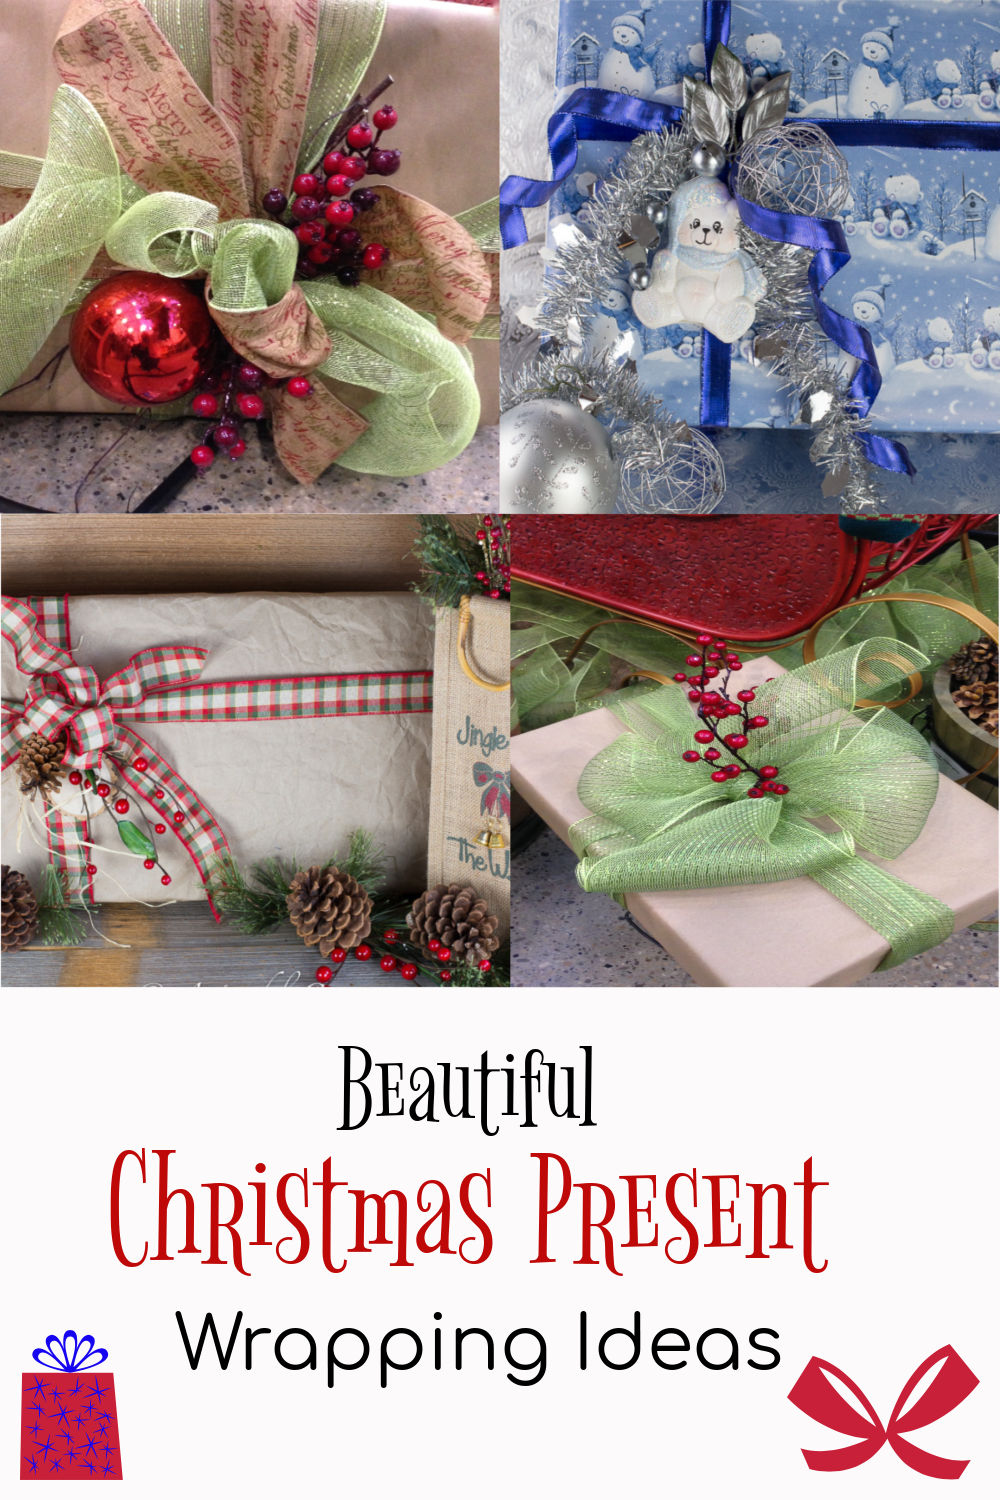 Great ideas for beautifully wrapping Christmas presents via @artandthekitch